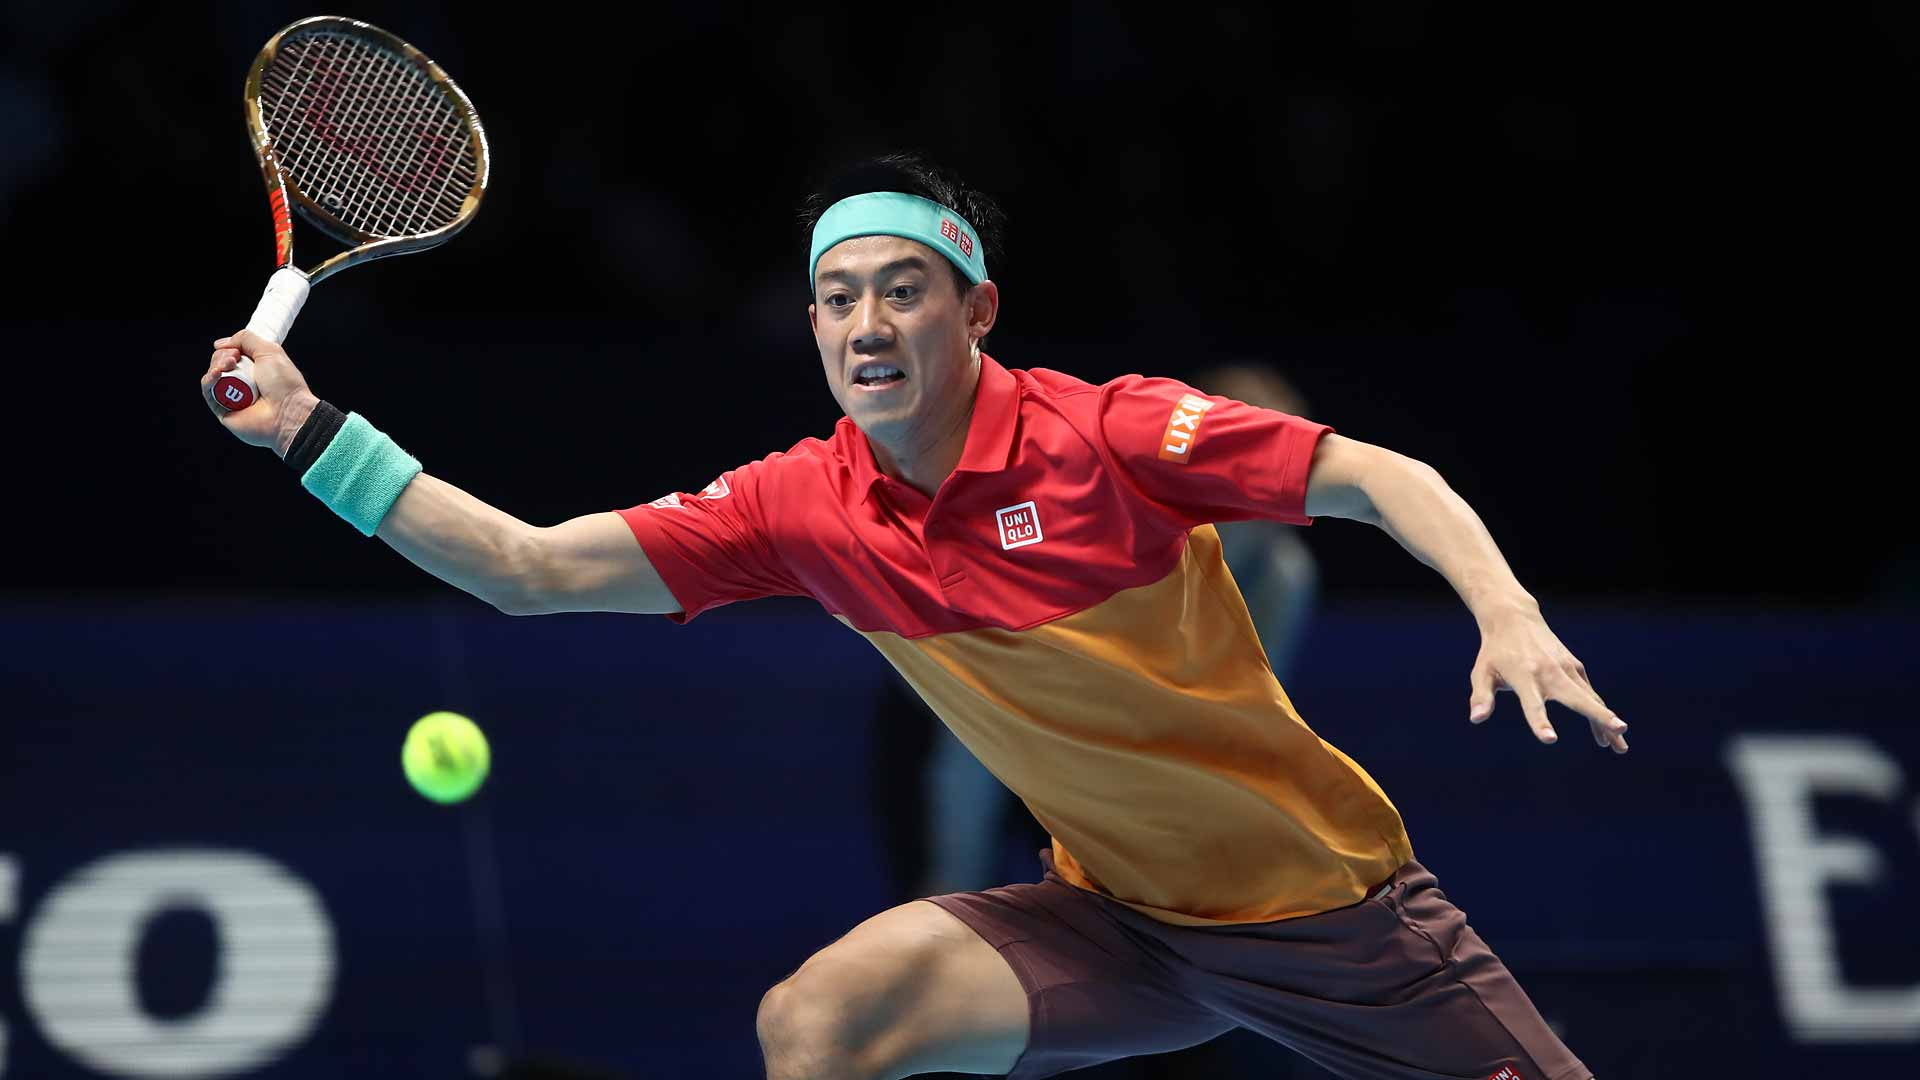 06-Nishikori-Nitto-ATP-Finals-2018-Tuesday